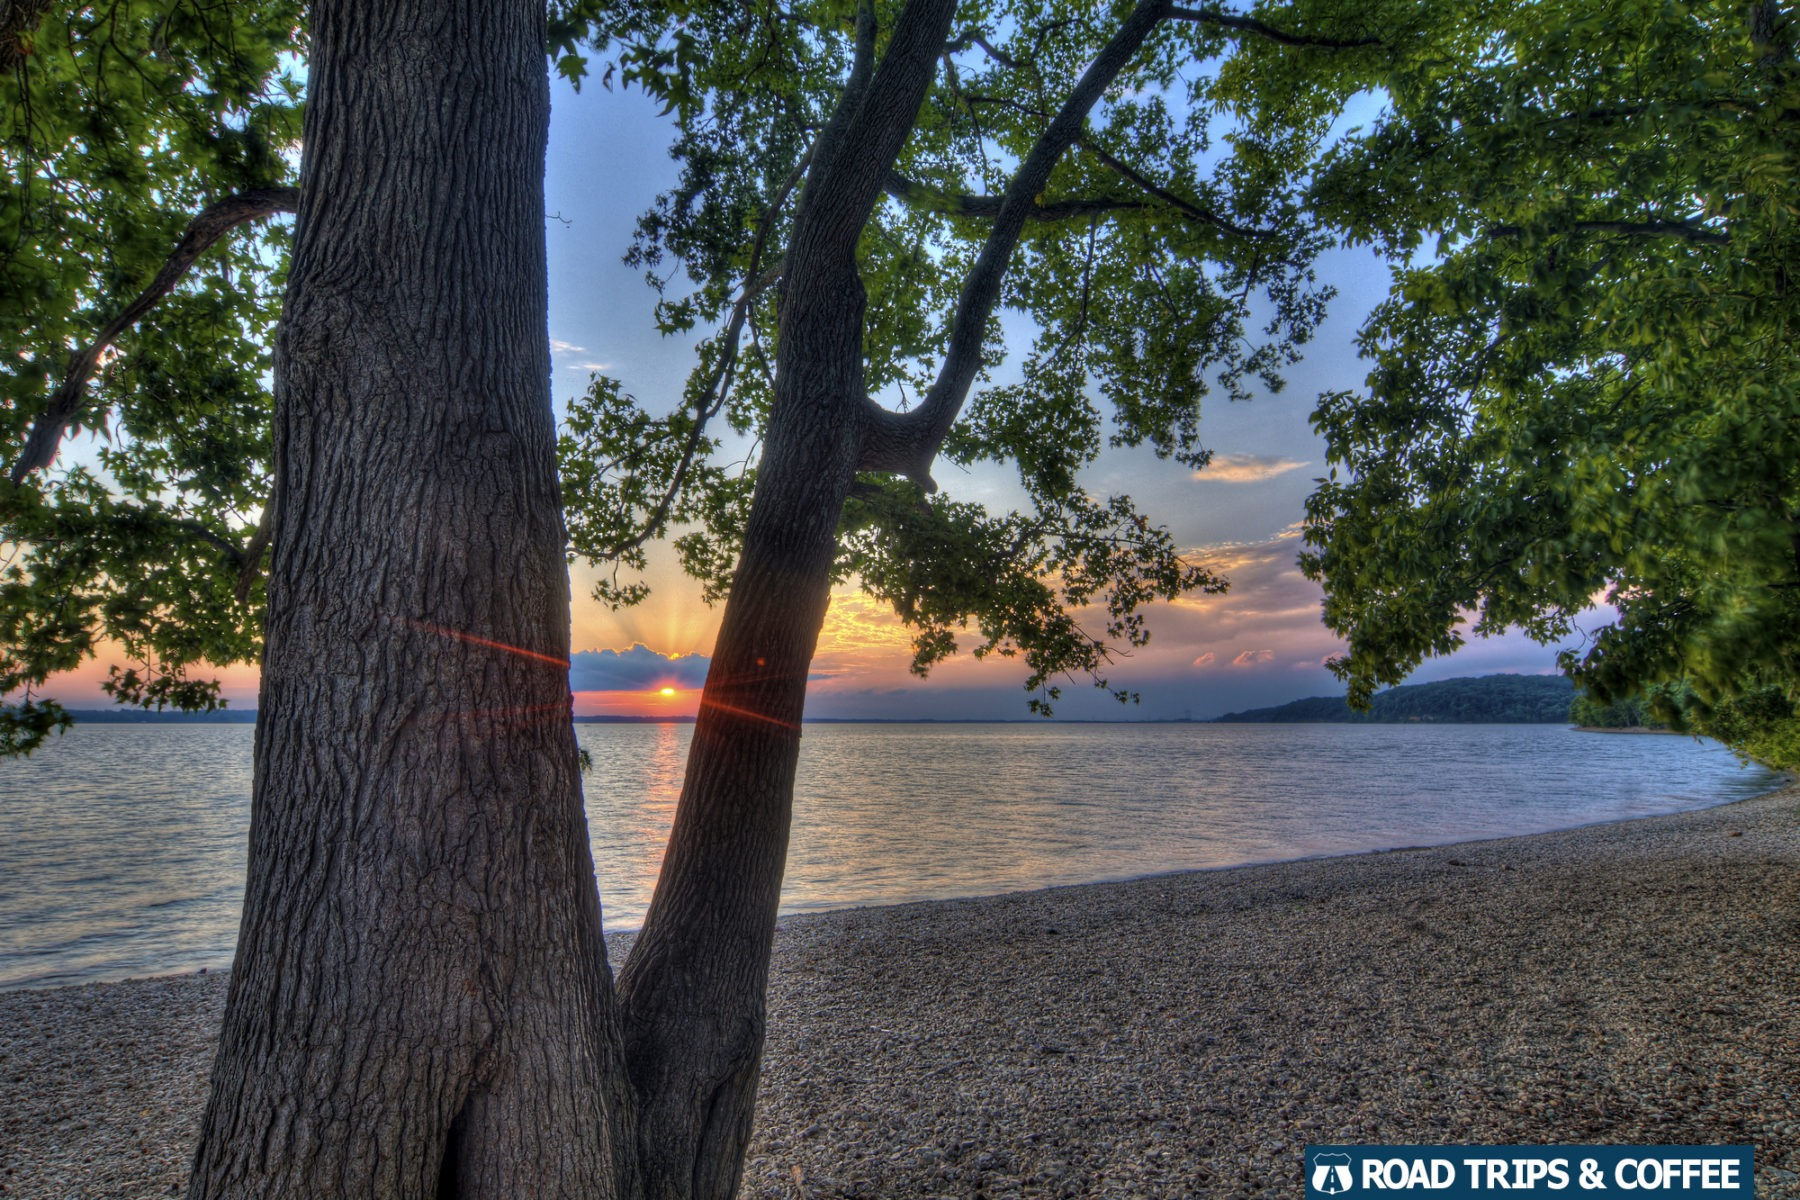 Warm sunset beyond a tree across the calm water of Kentucky Lake at the Moss Creek Day Use Area at Land Between the Lakes National Recreation Area